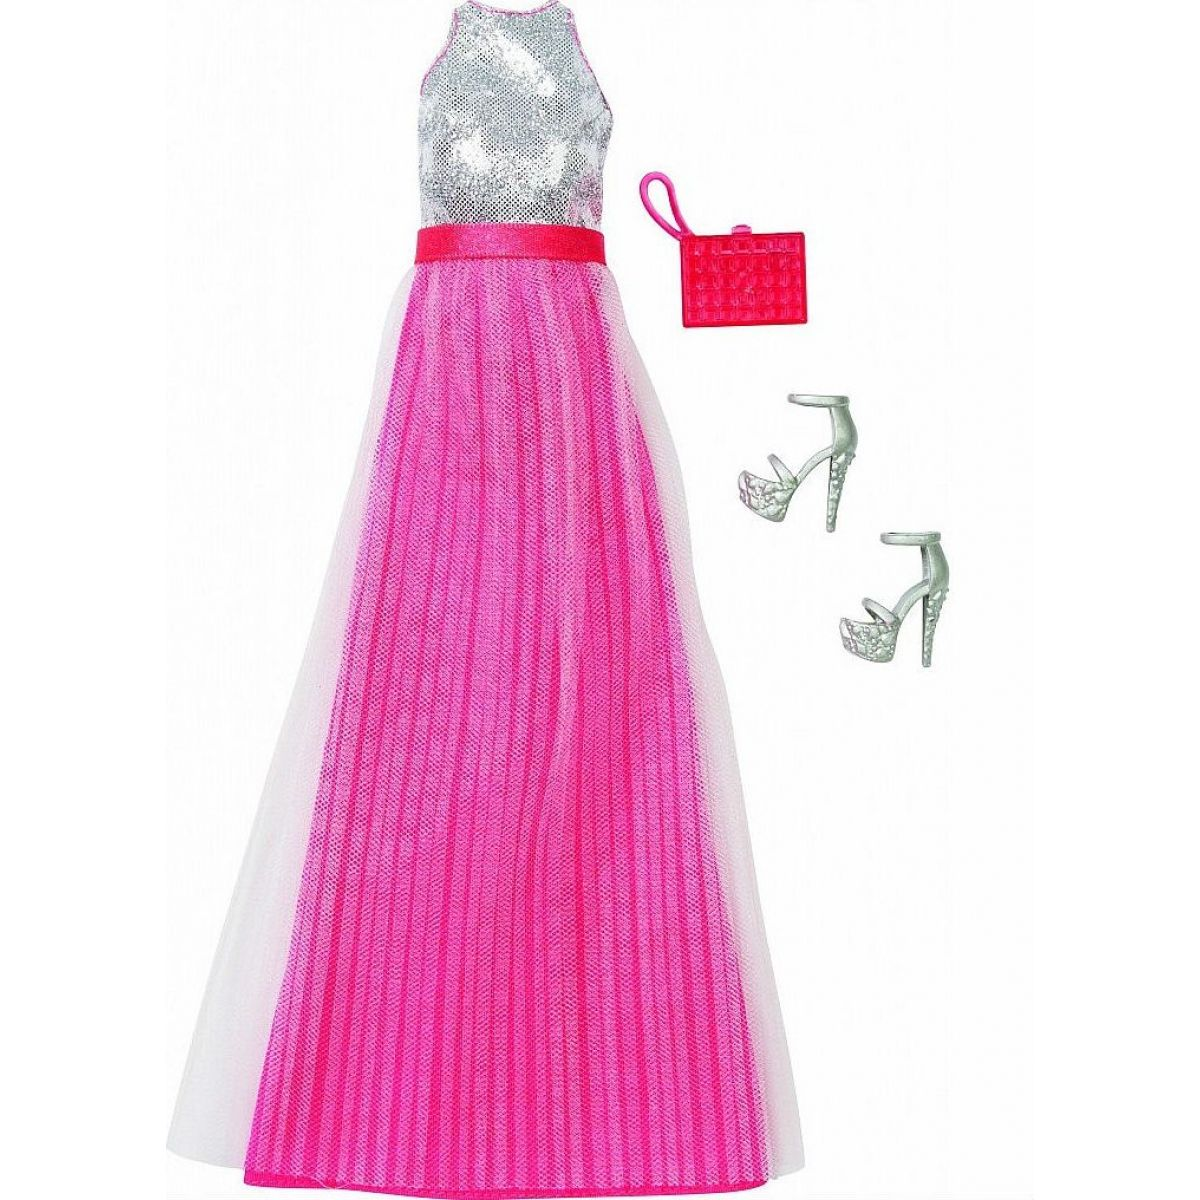 Barbie outfit s doplňky - DNV27